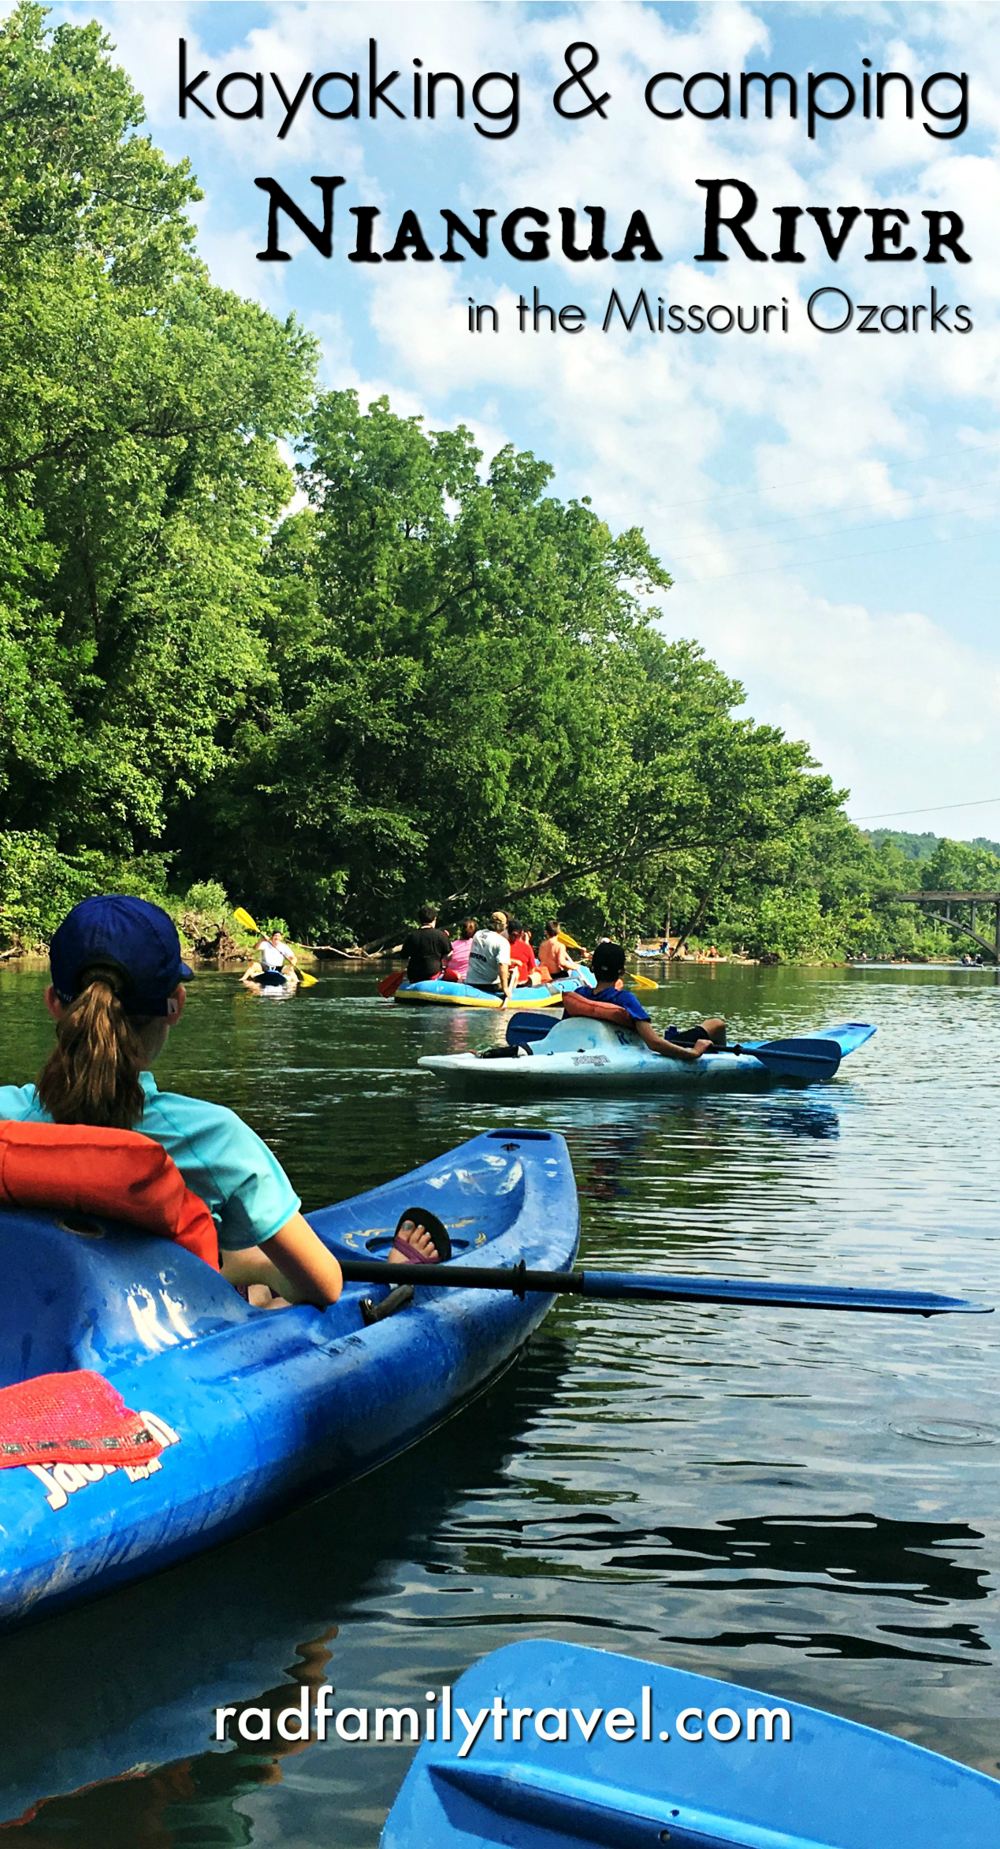 Kayaking & camping along the Niangua River Kayak camping